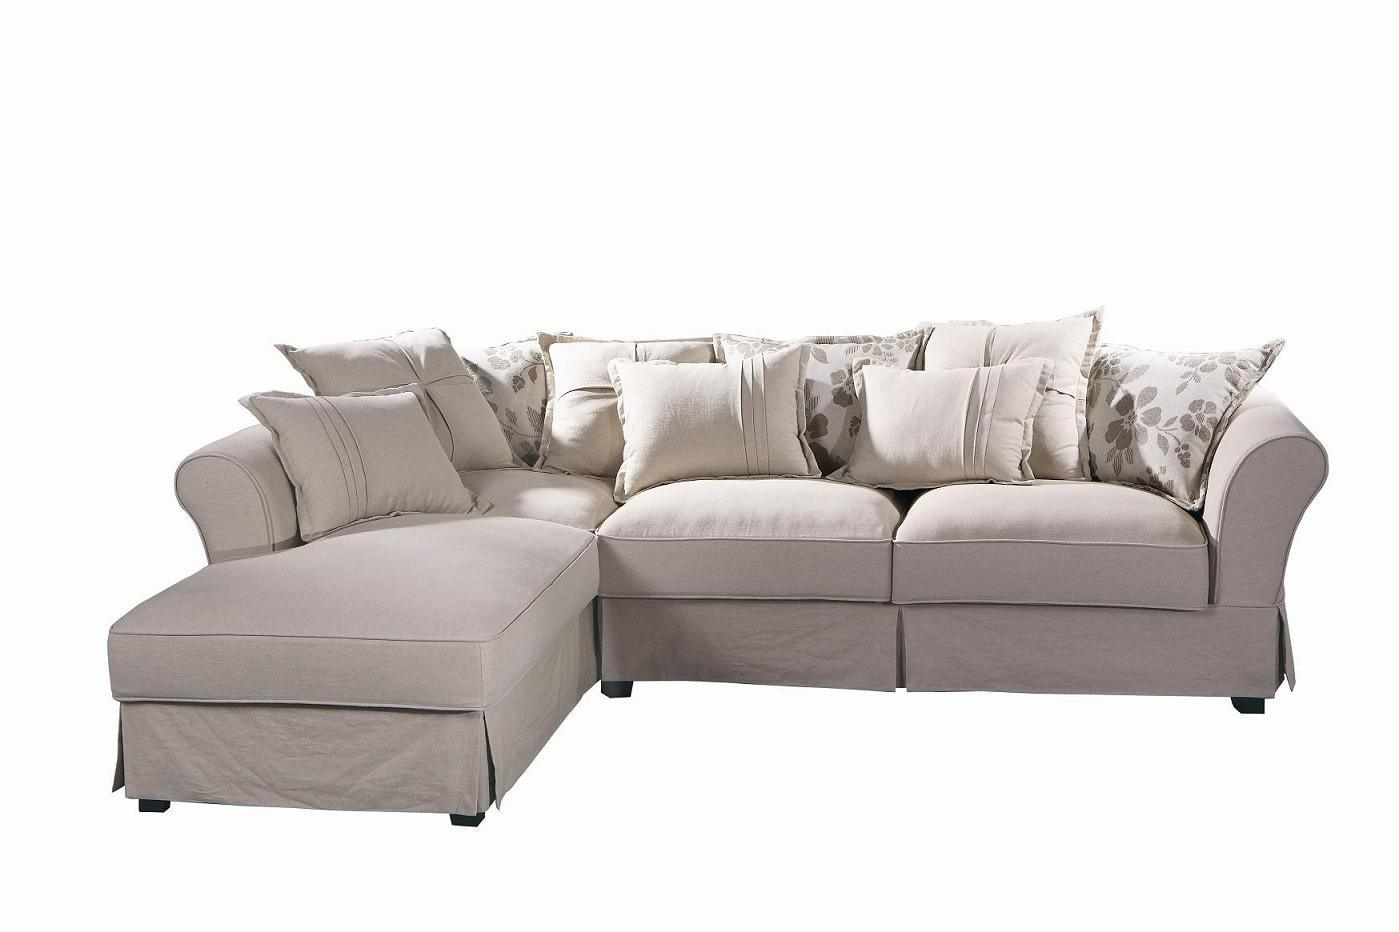 China fabric sectional sofa rl2026 china sofa fabric sofa for Furniture sofas and couches